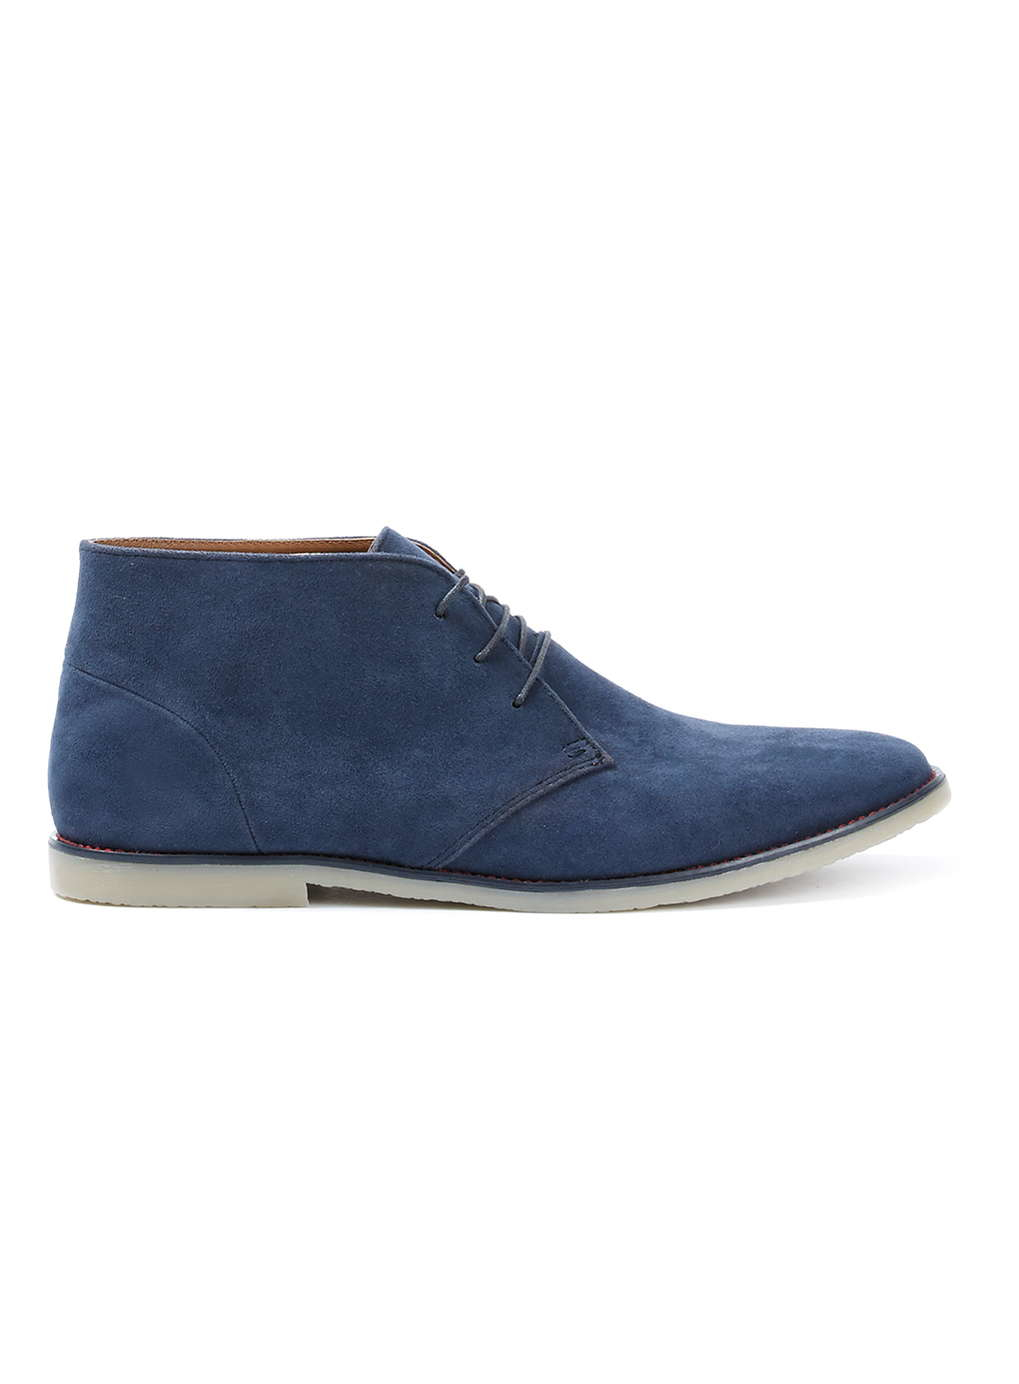 topman navy faux suede desert chukka boots in blue for